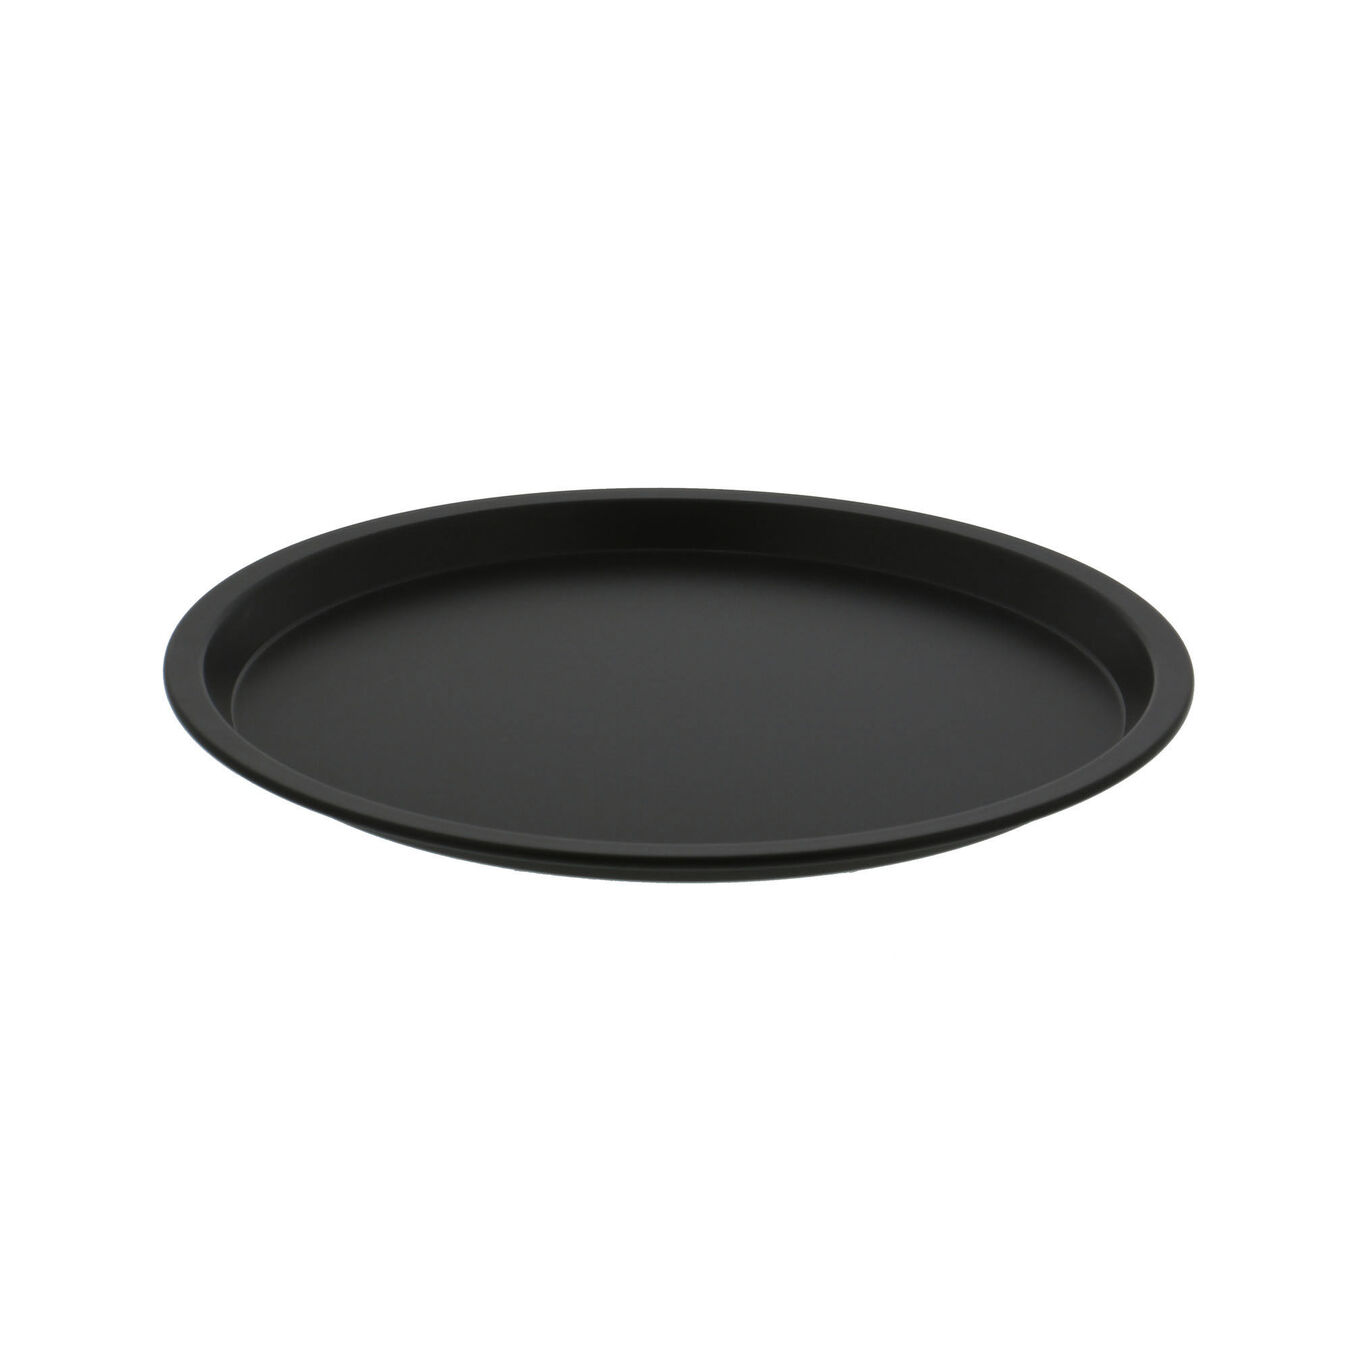 11-inch Pizza Pan,,large 1